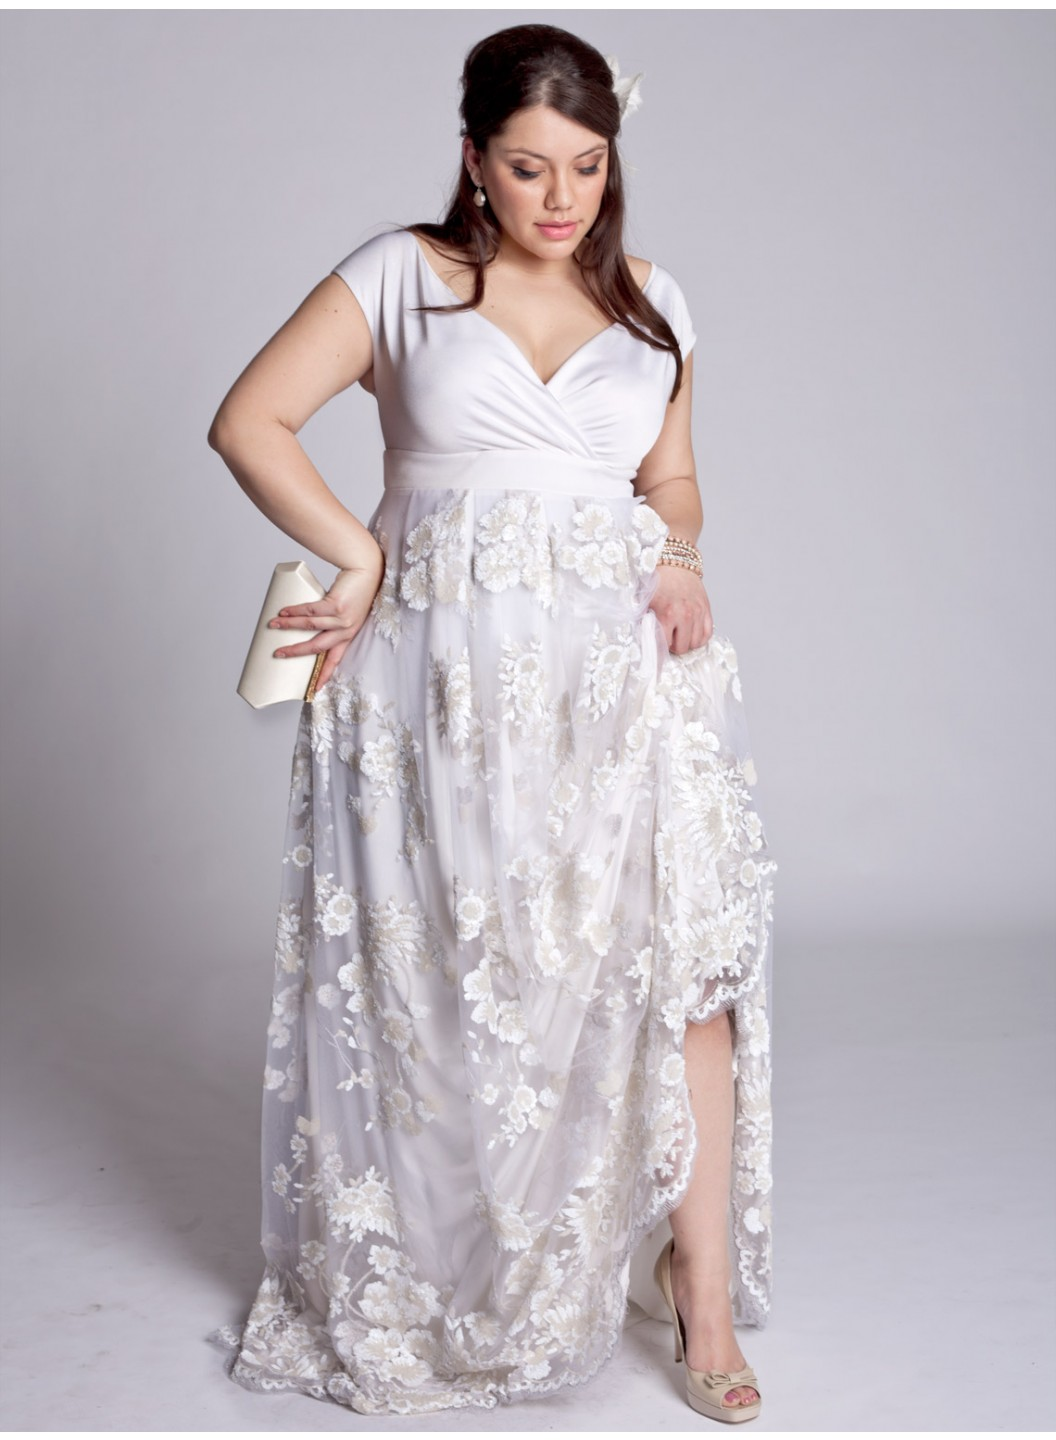 Simple plus size wedding dress with embroiderycherry marry for Plus size after wedding dress